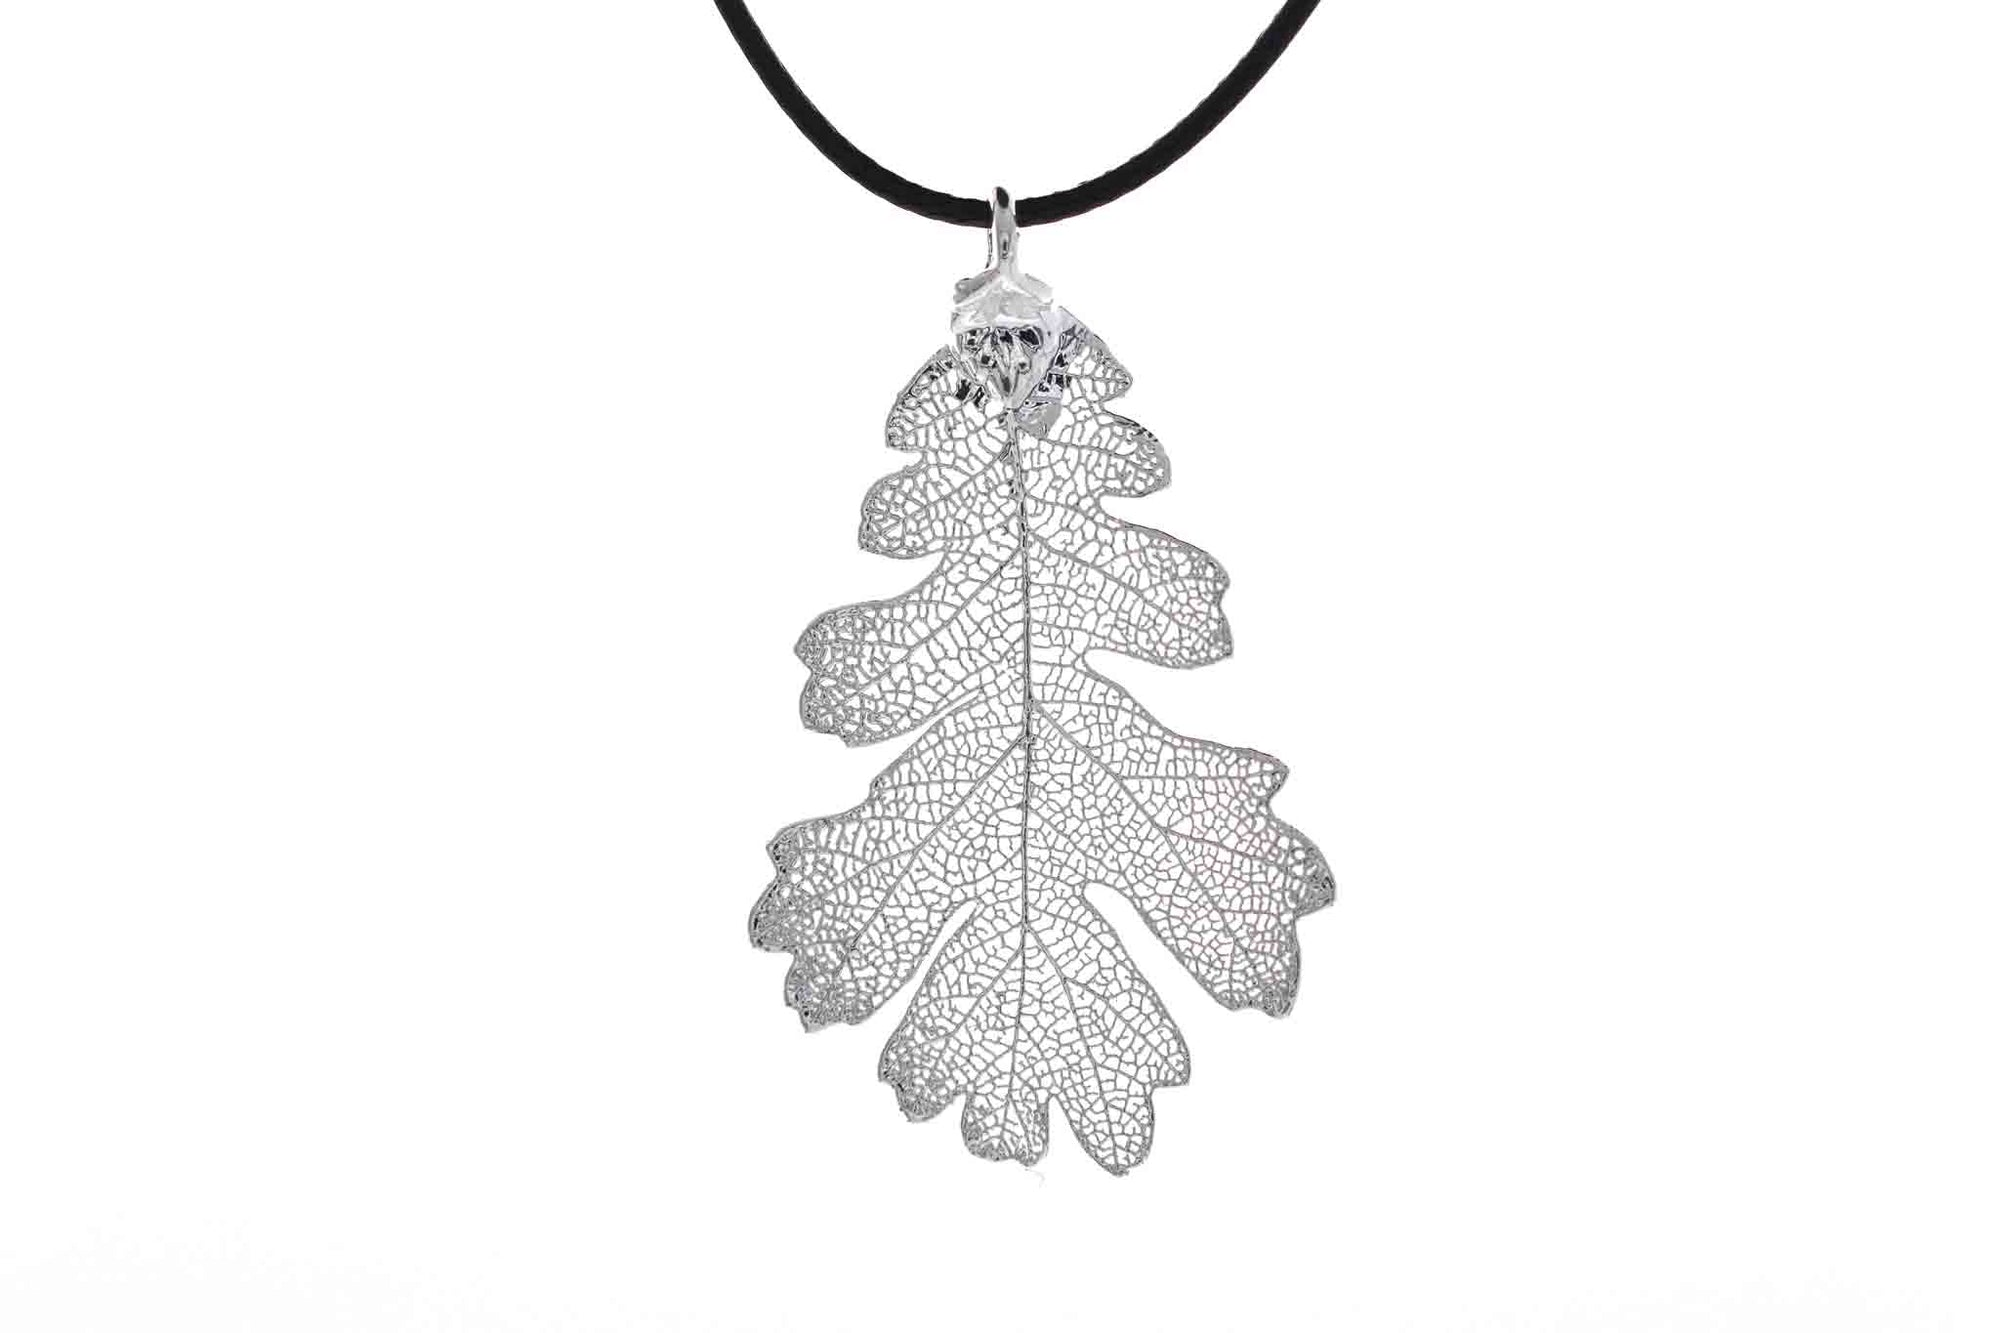 Real Oak Leaf Necklace In Silver - Black Cord